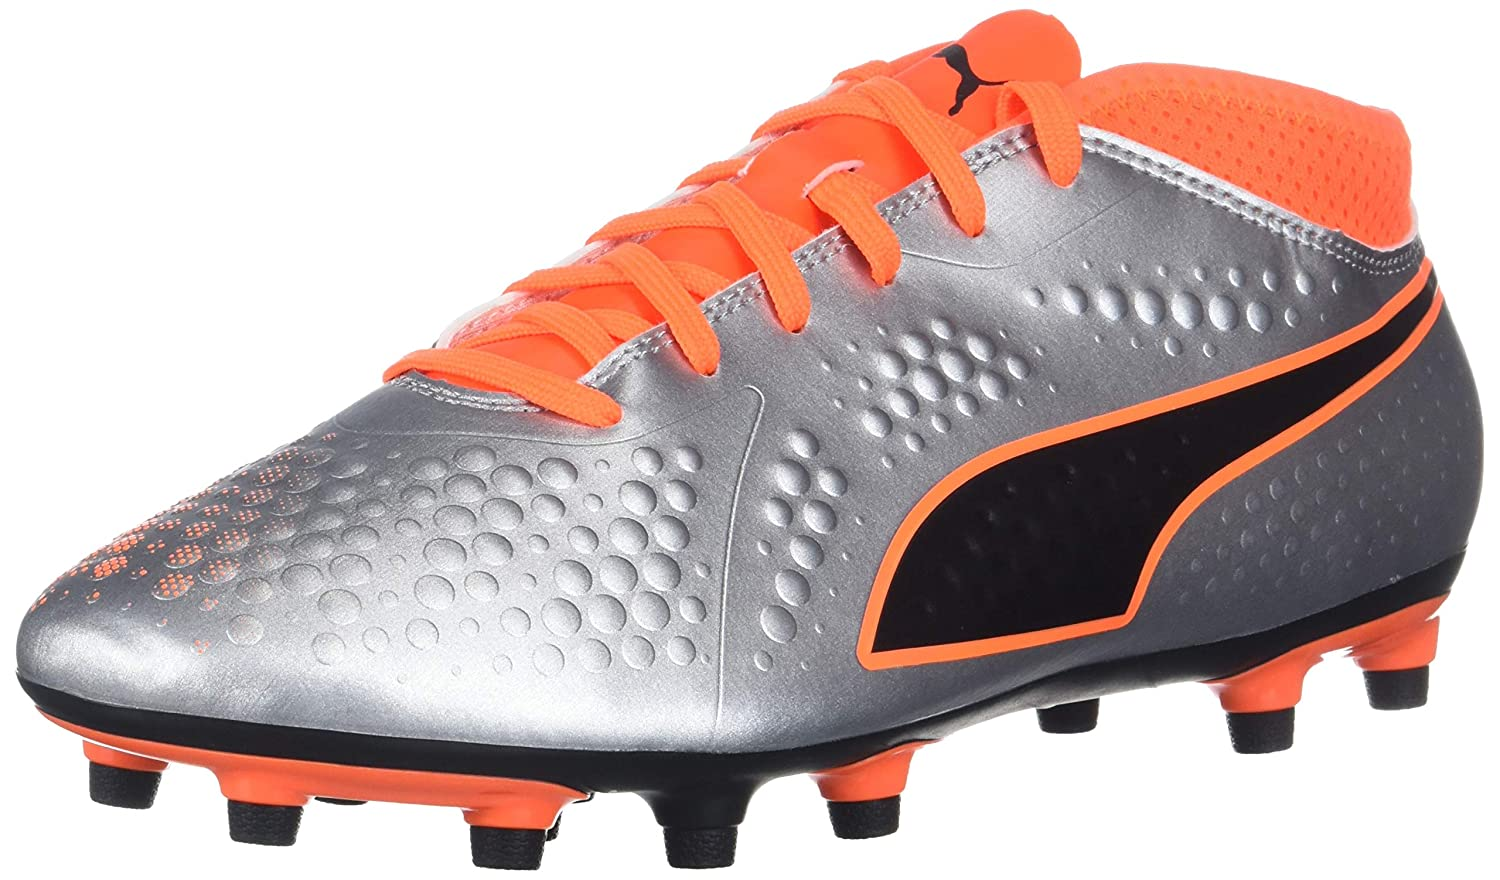 92ac5b115 Puma Men's One 4 Il Syn Fg Soccer Shoe: Buy Online at Low Prices in India -  Amazon.in